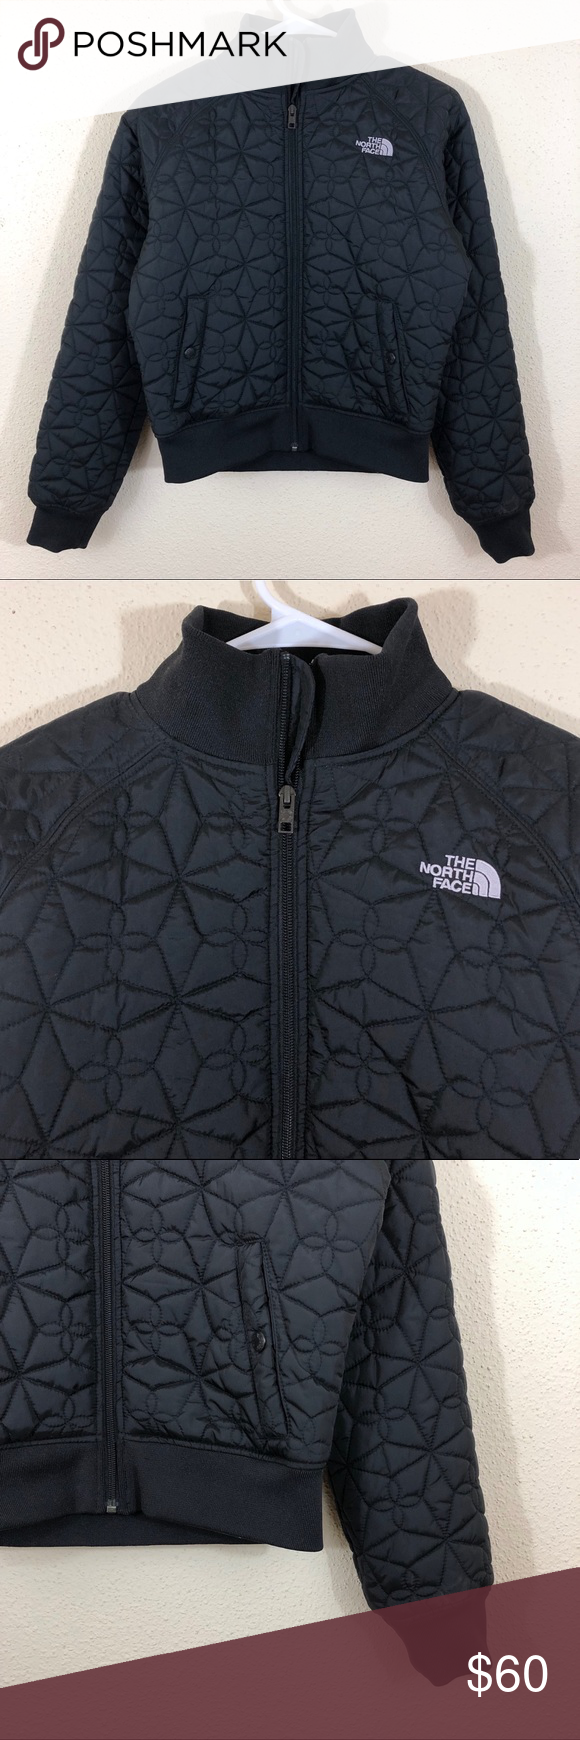 The North Face Quilted Cropped Zip Bomber Jacket Jackets Clothes Design Bomber Jacket [ 1740 x 580 Pixel ]